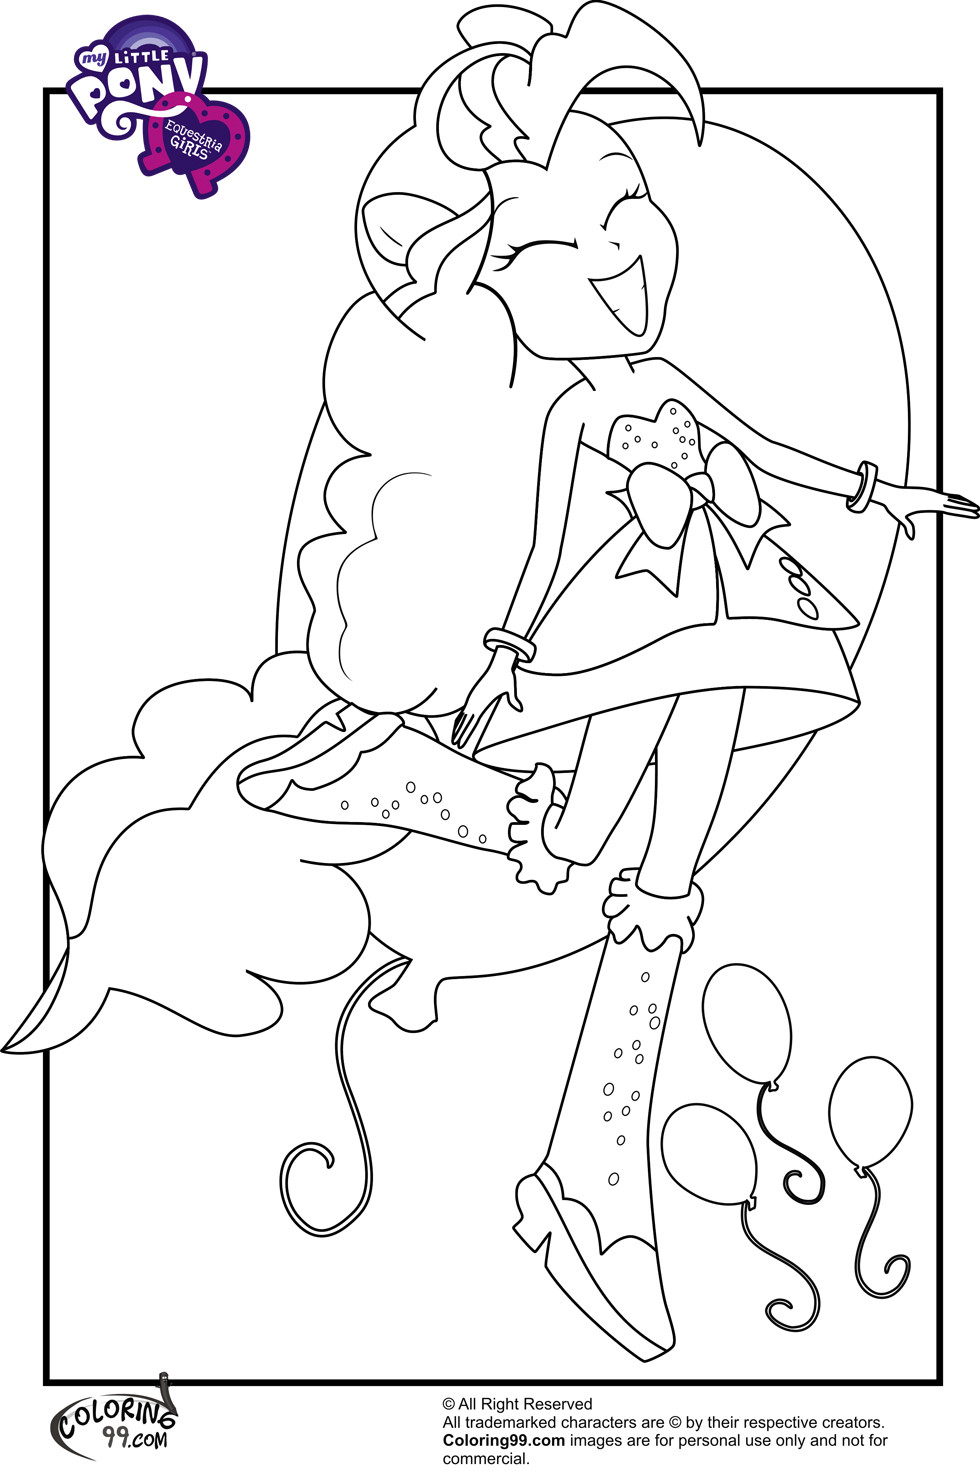 Best ideas about Coloring Pages For Girls My Little Pony Equestria Girls . Save or Pin My Little Pony Equestria Girls Coloring Pages Now.